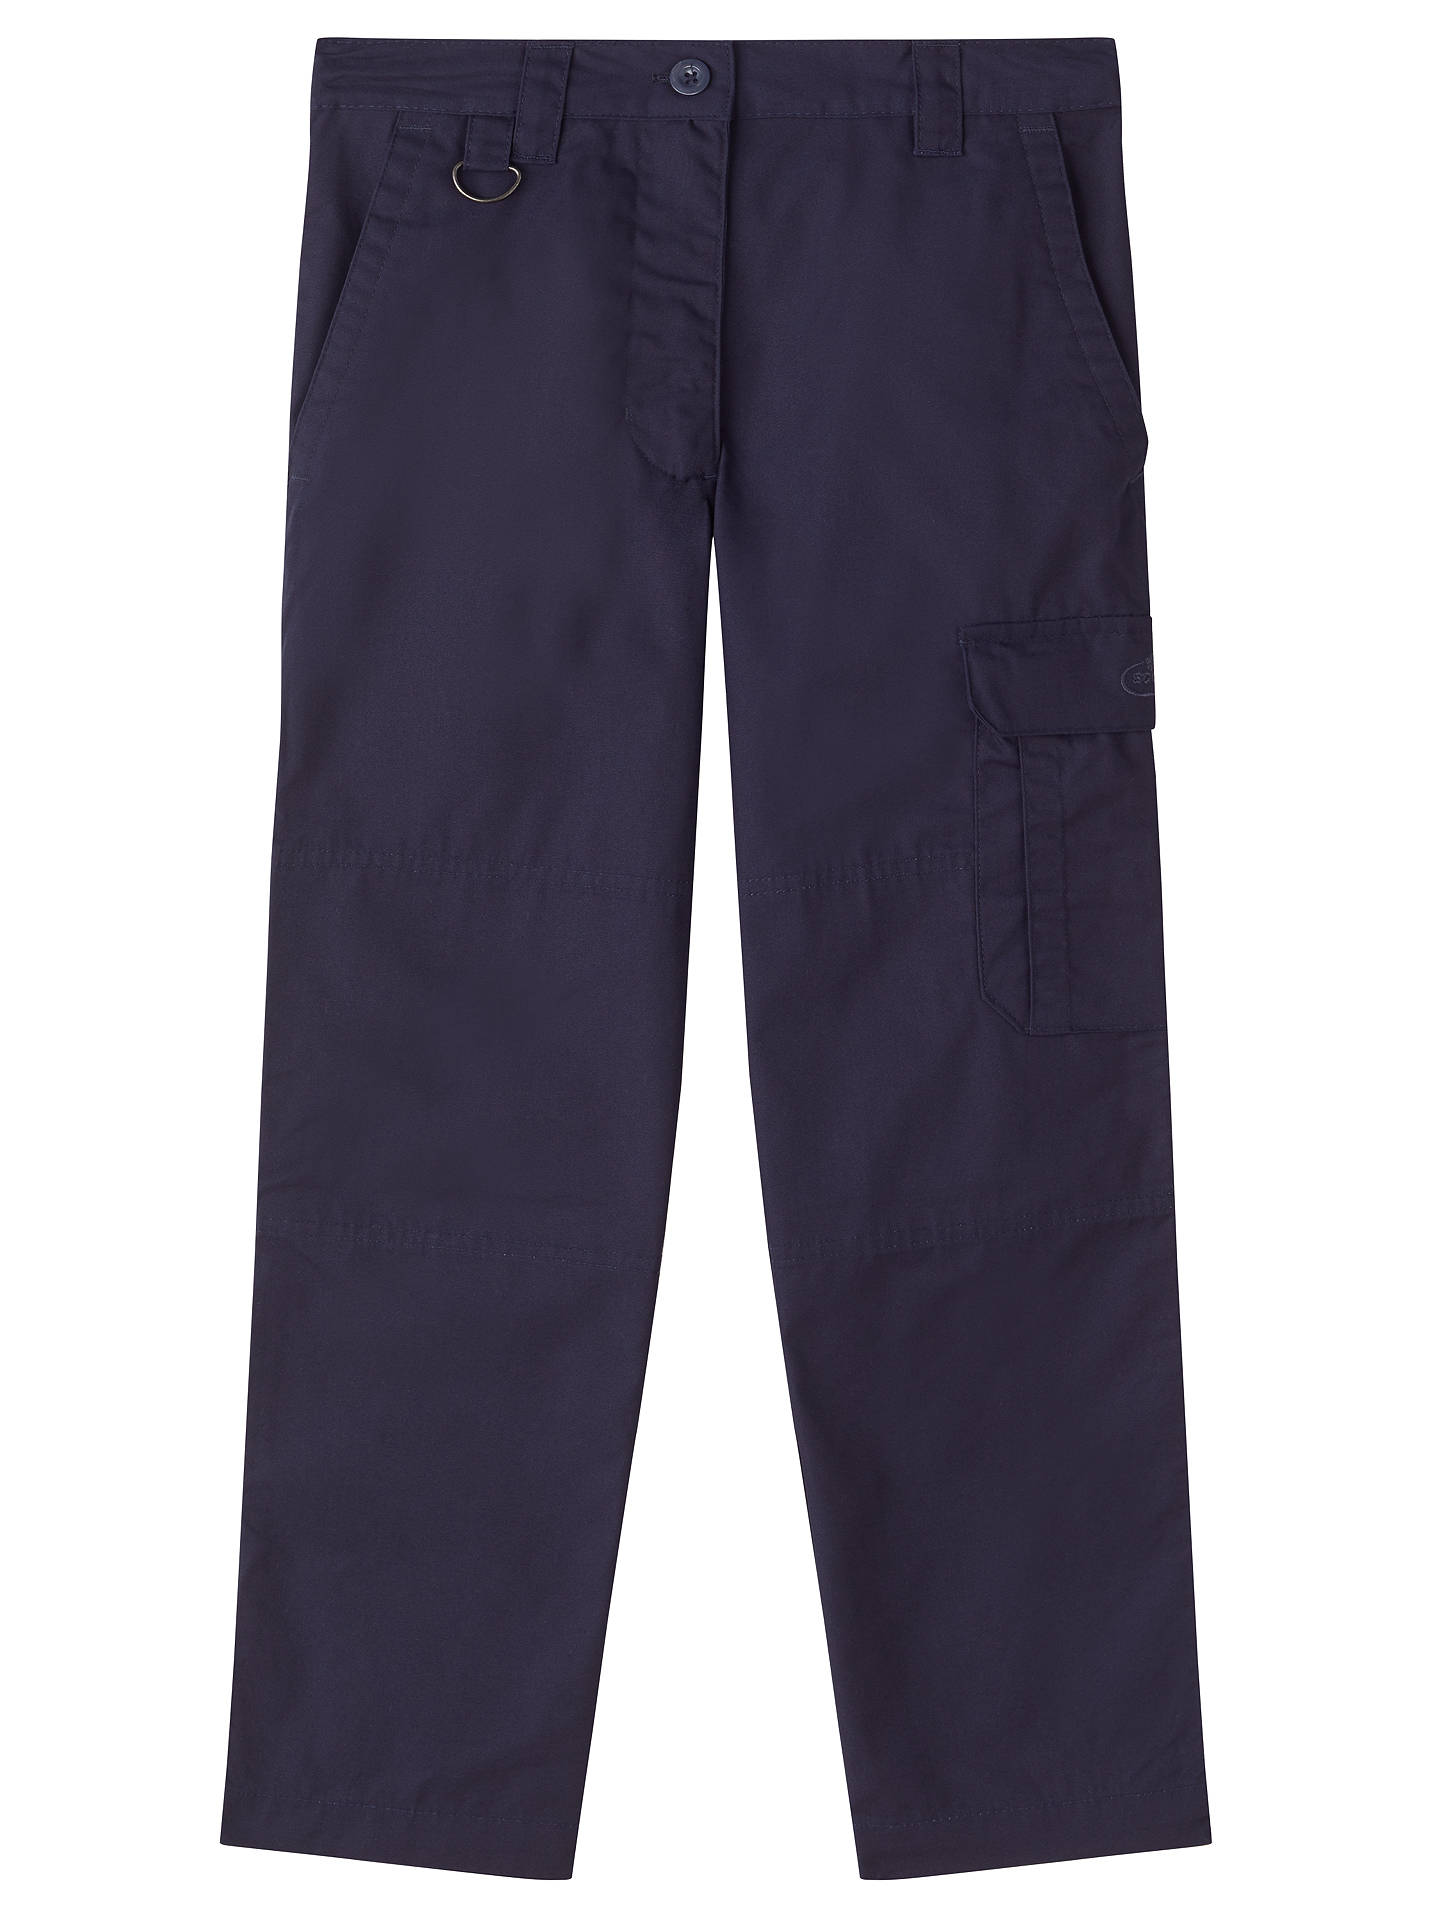 BuyBeavers, Cubs & Scouts Girls' Activity Trousers, Navy, 11-12 years Online at johnlewis.com